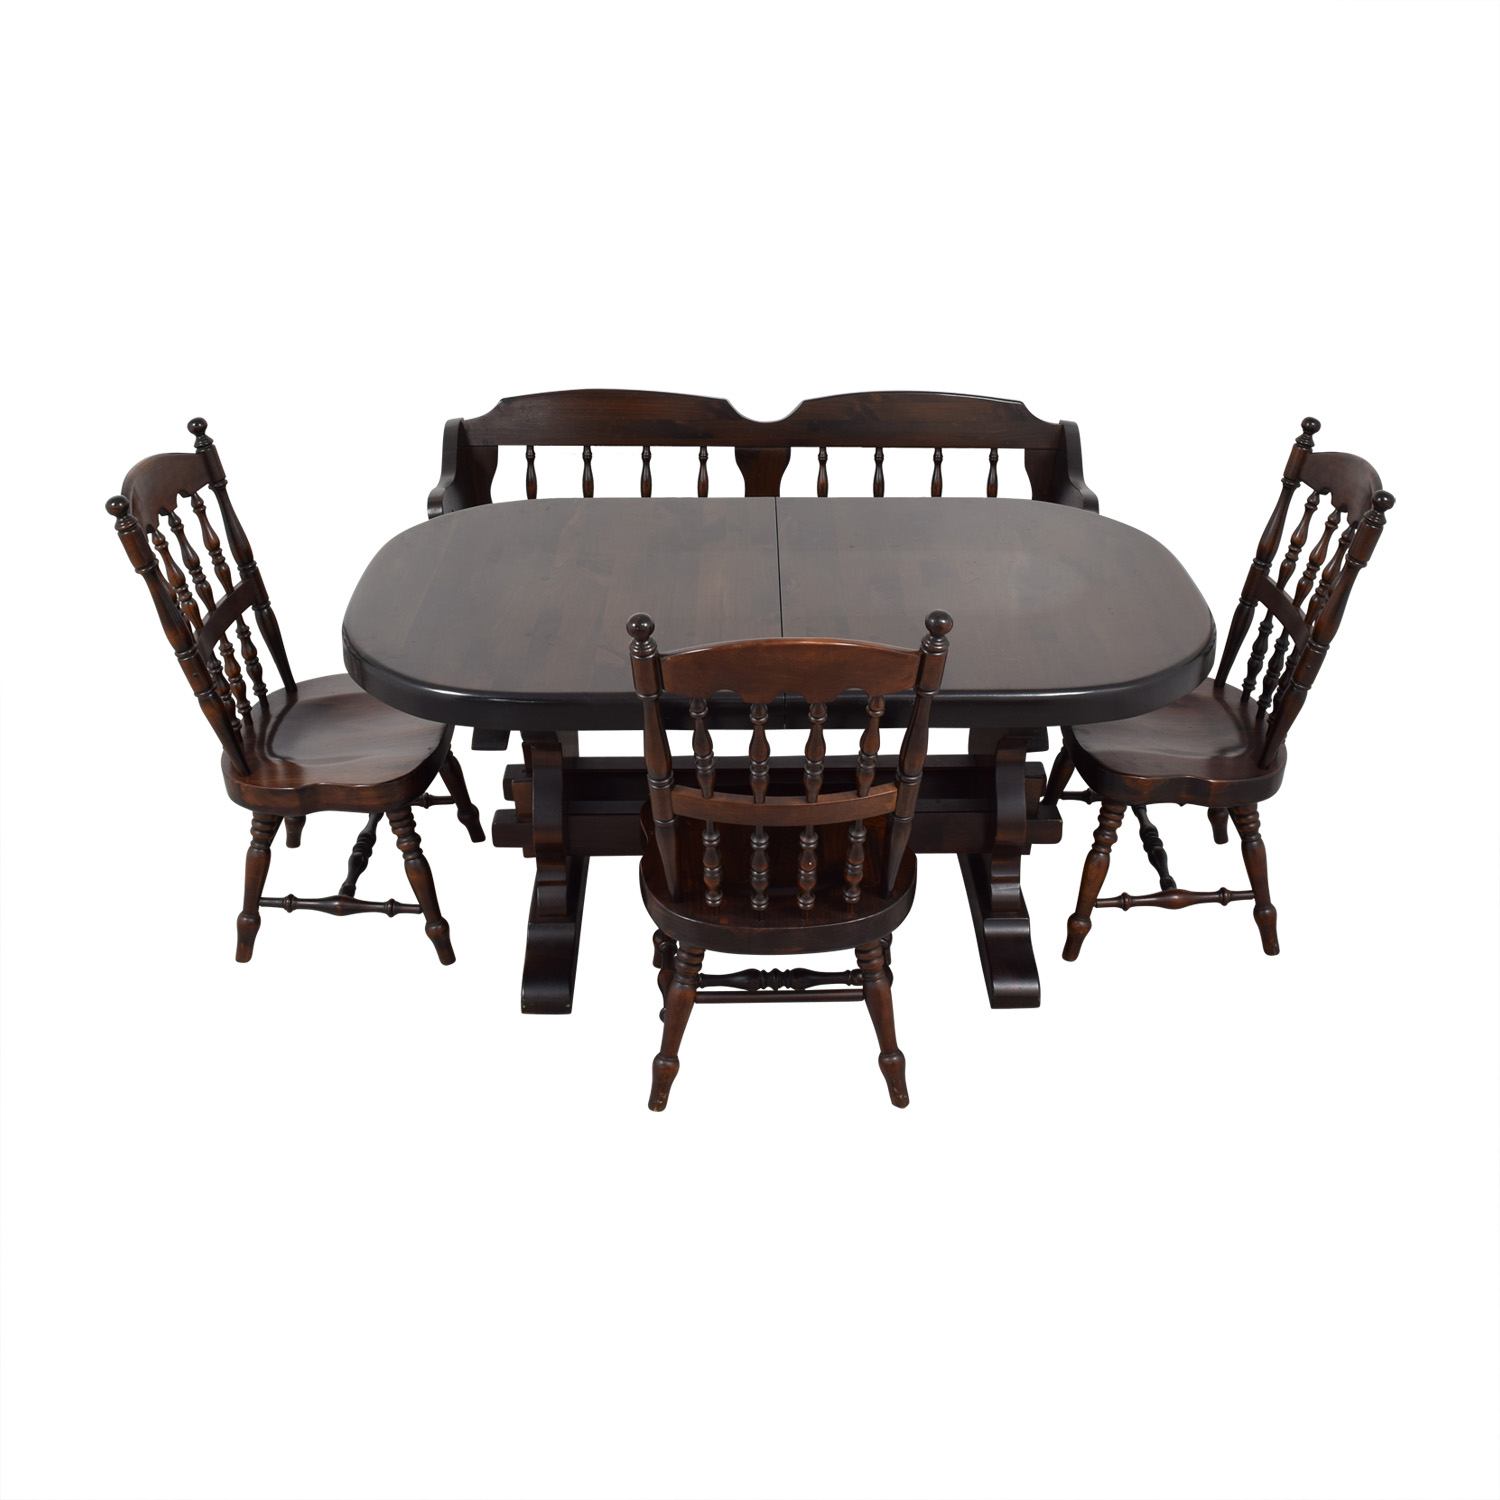 buy Bennington Pine Bennington Pine Extendable Dining Set online